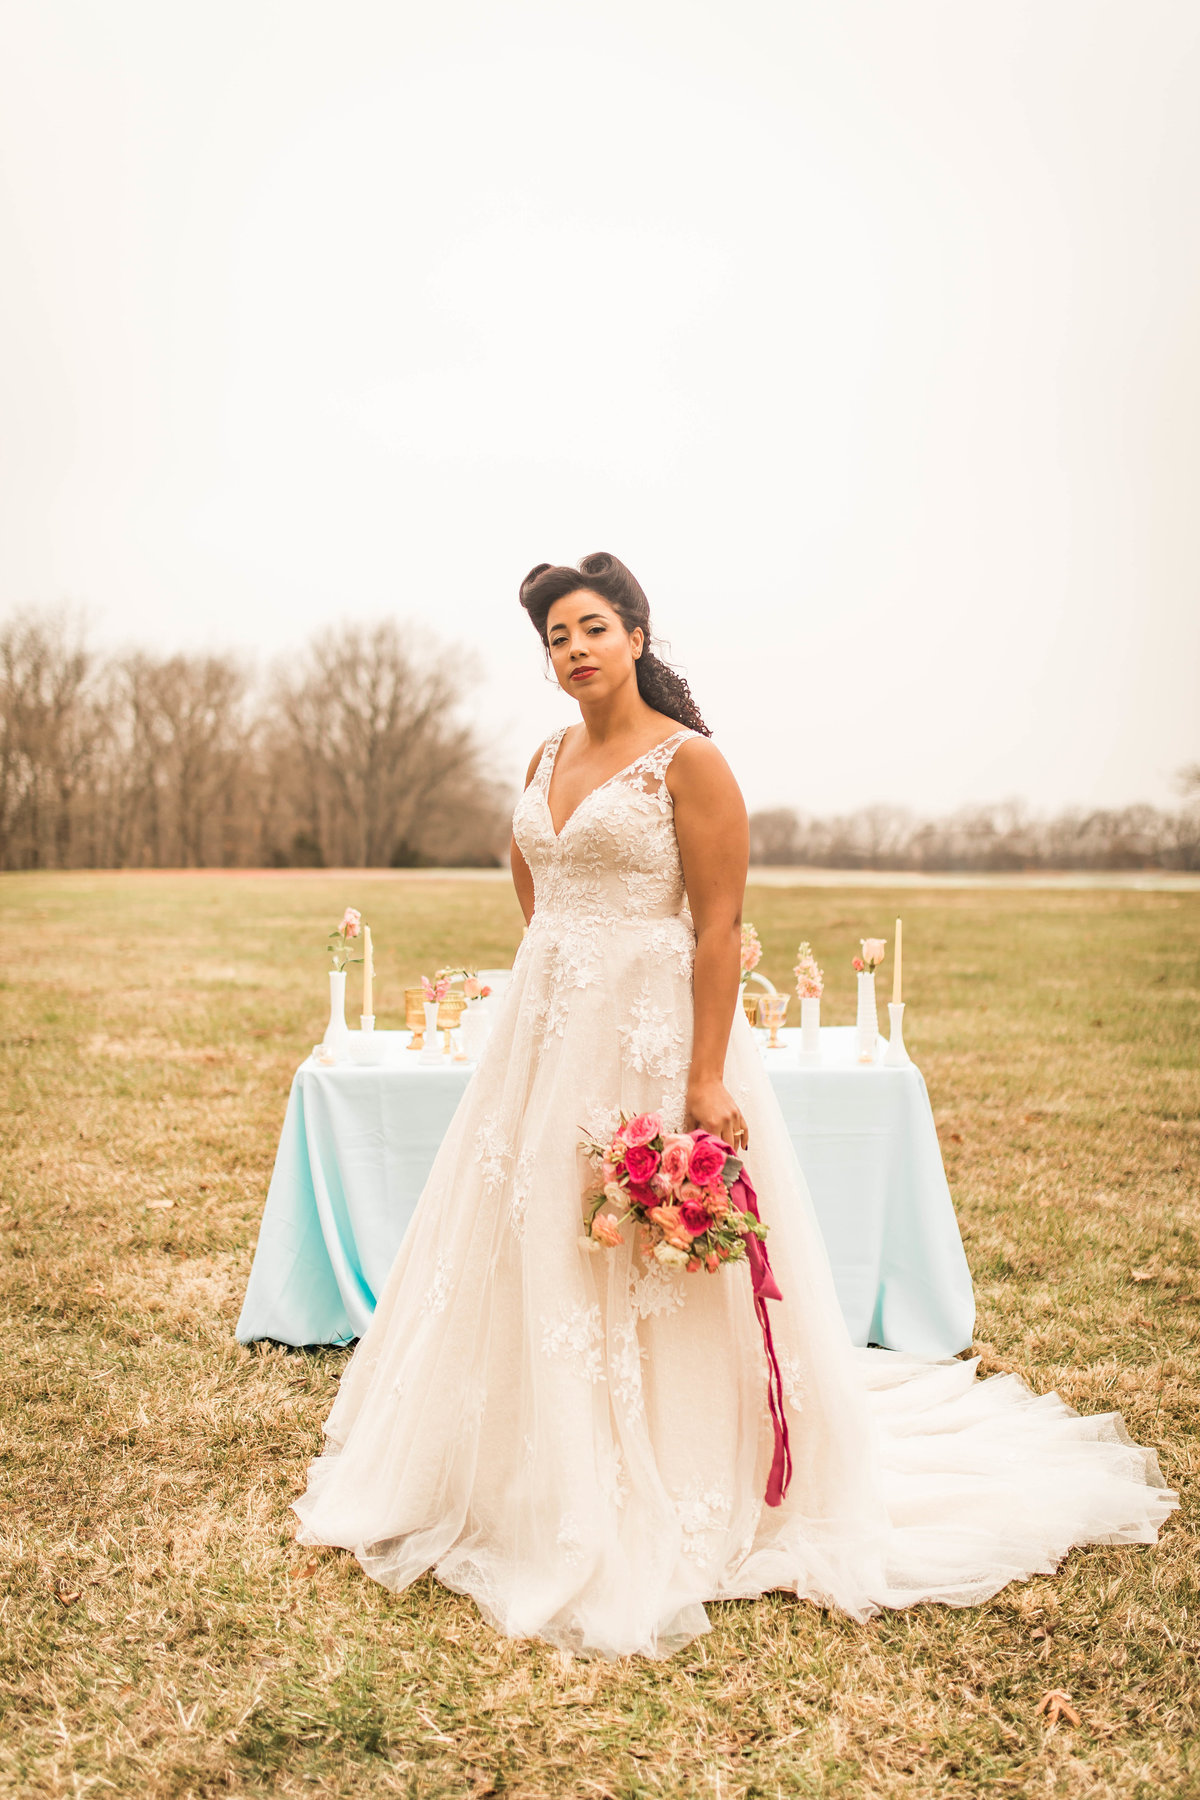 Retro Styled Shoot - Sophia and Andrew - St Louis Wedding Photographer - Allison Slater Photography 112